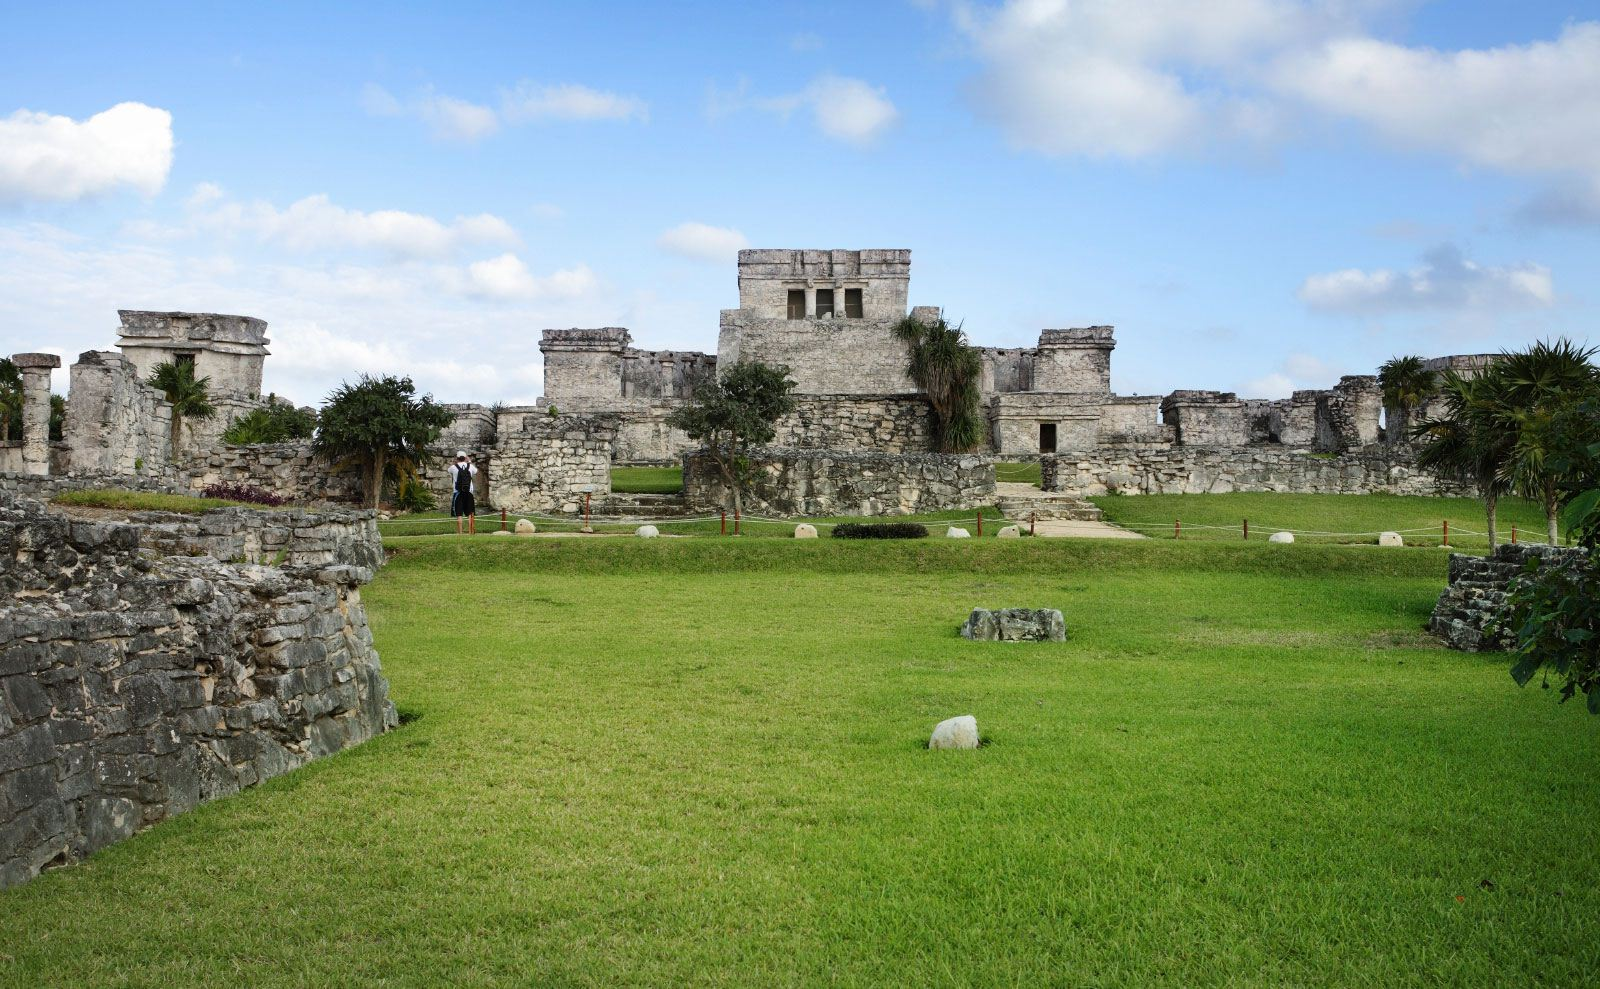 The Mayan Riviera in Quintana Roo